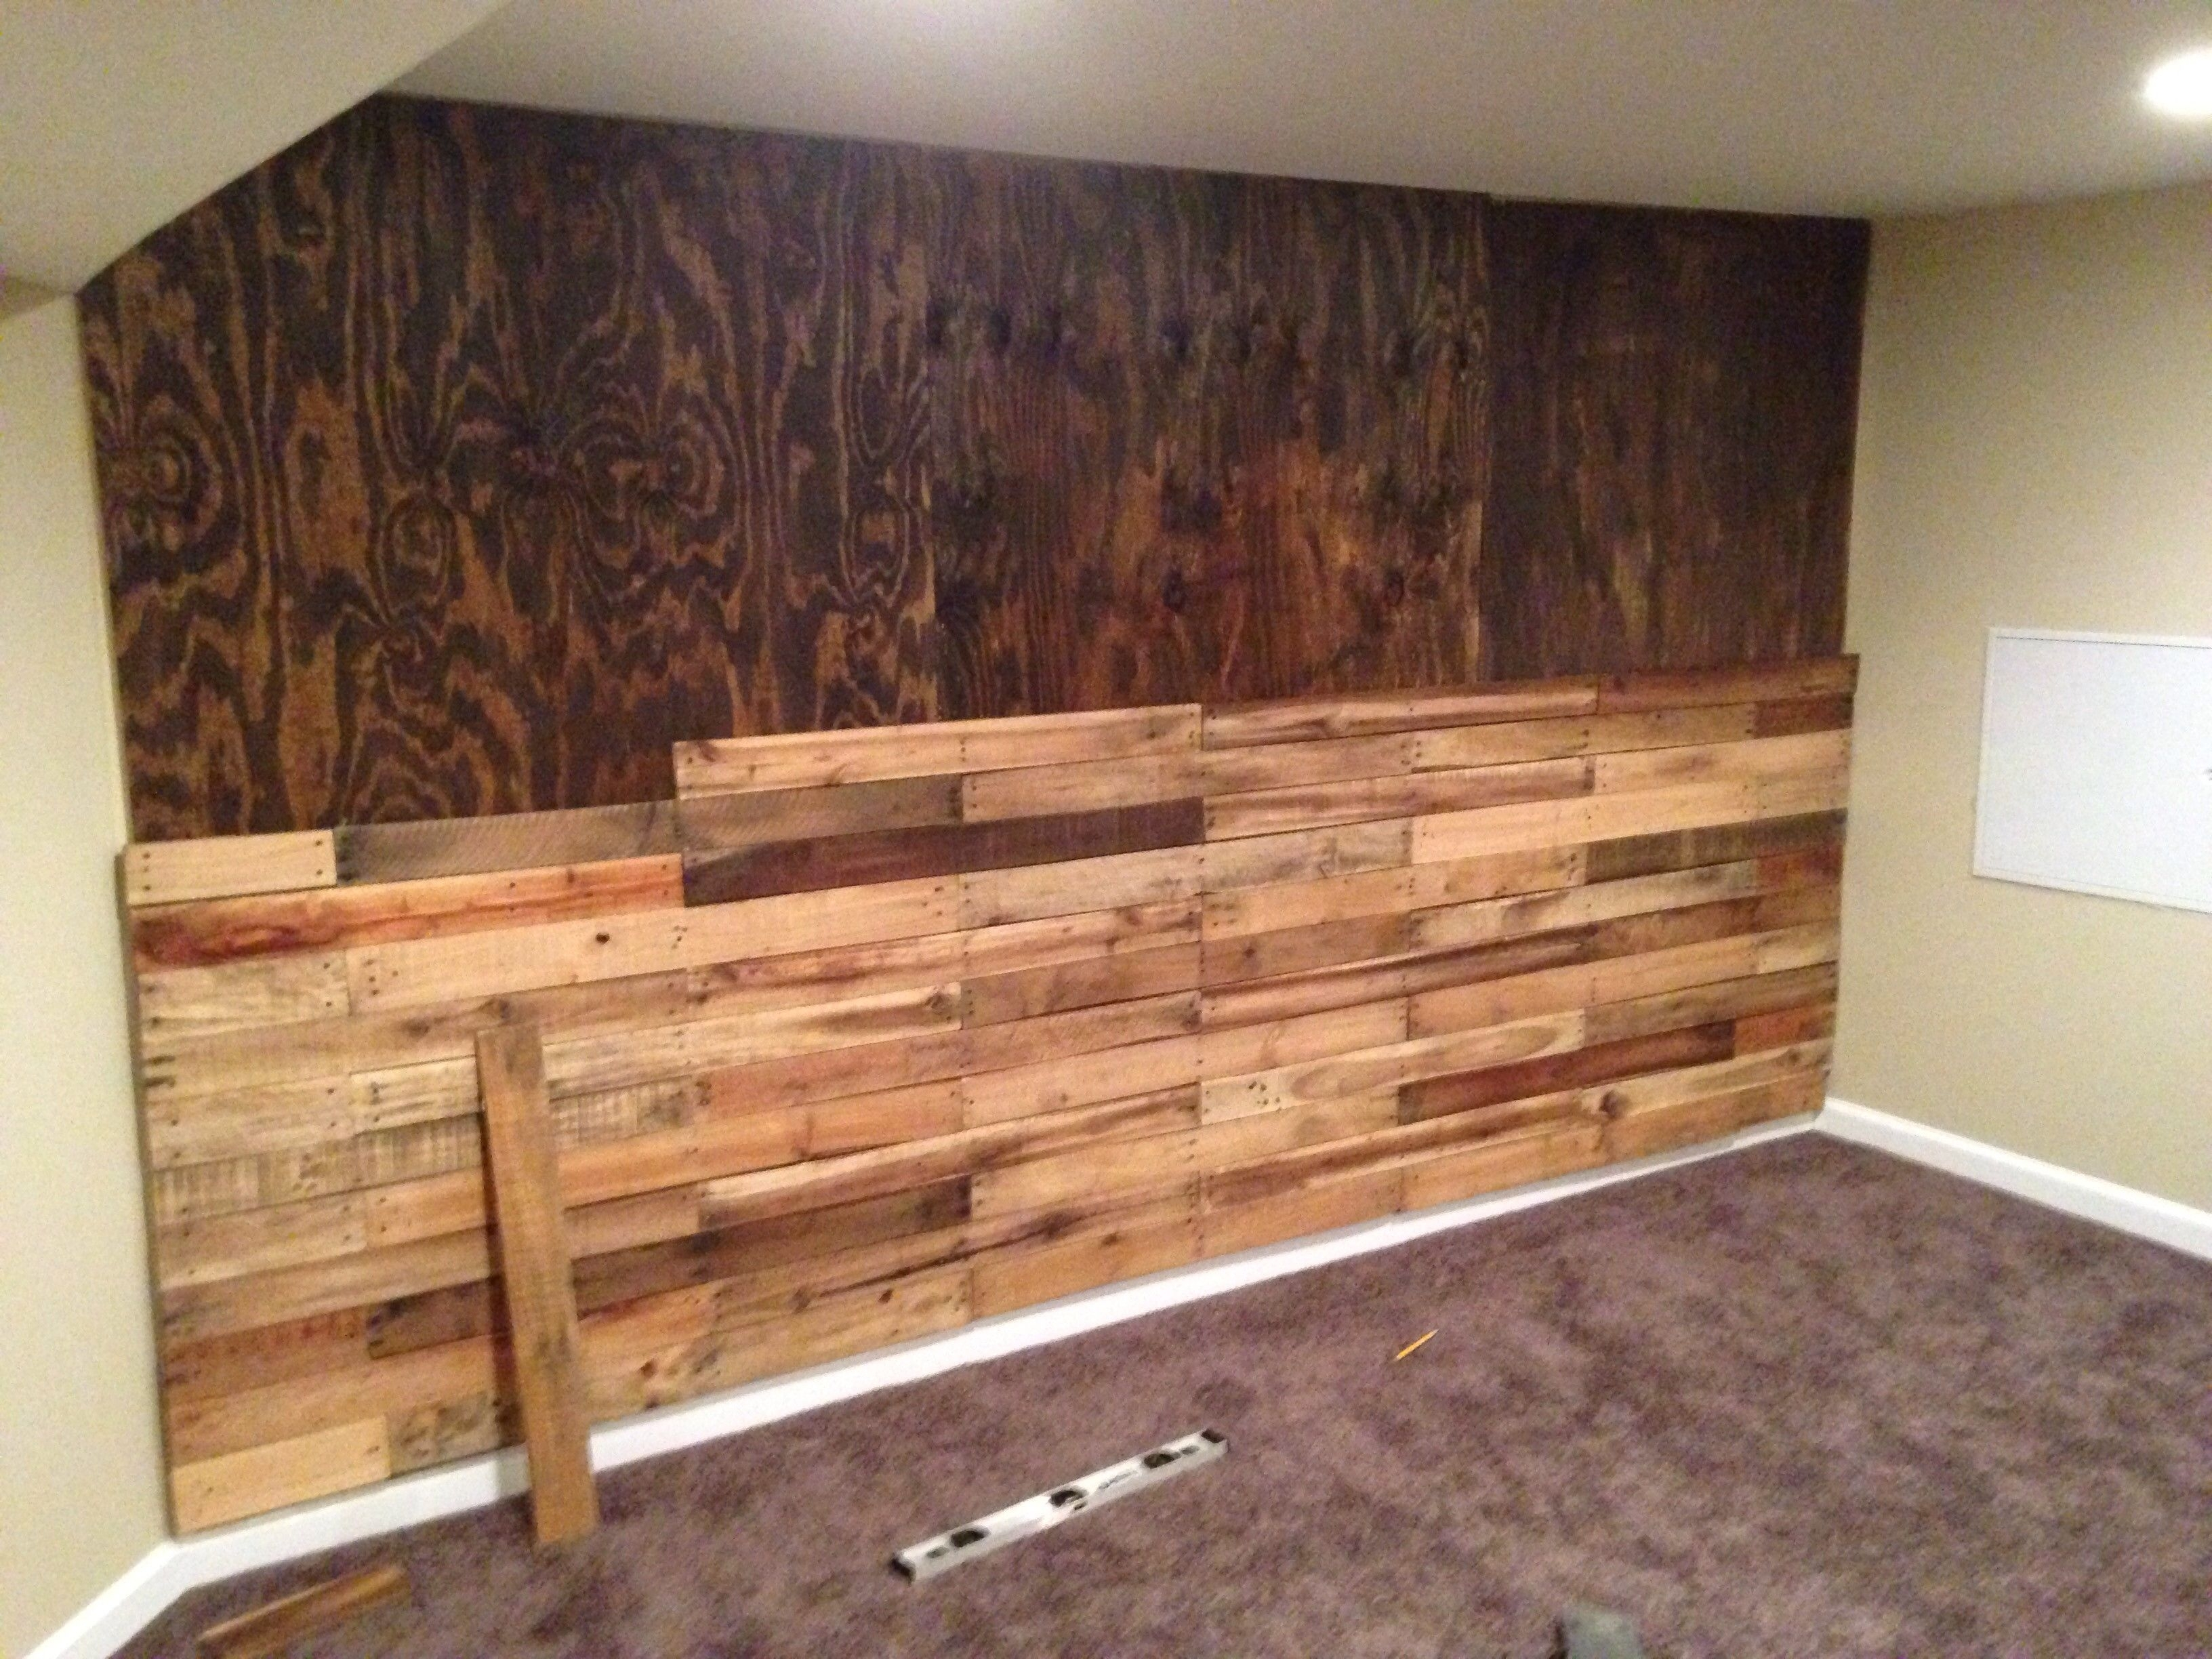 Pallet Accent Wall! | Pallet Accent Wall, Pallets And Walls Throughout Most Recent Wood Pallets Wall Accents (Gallery 7 of 15)